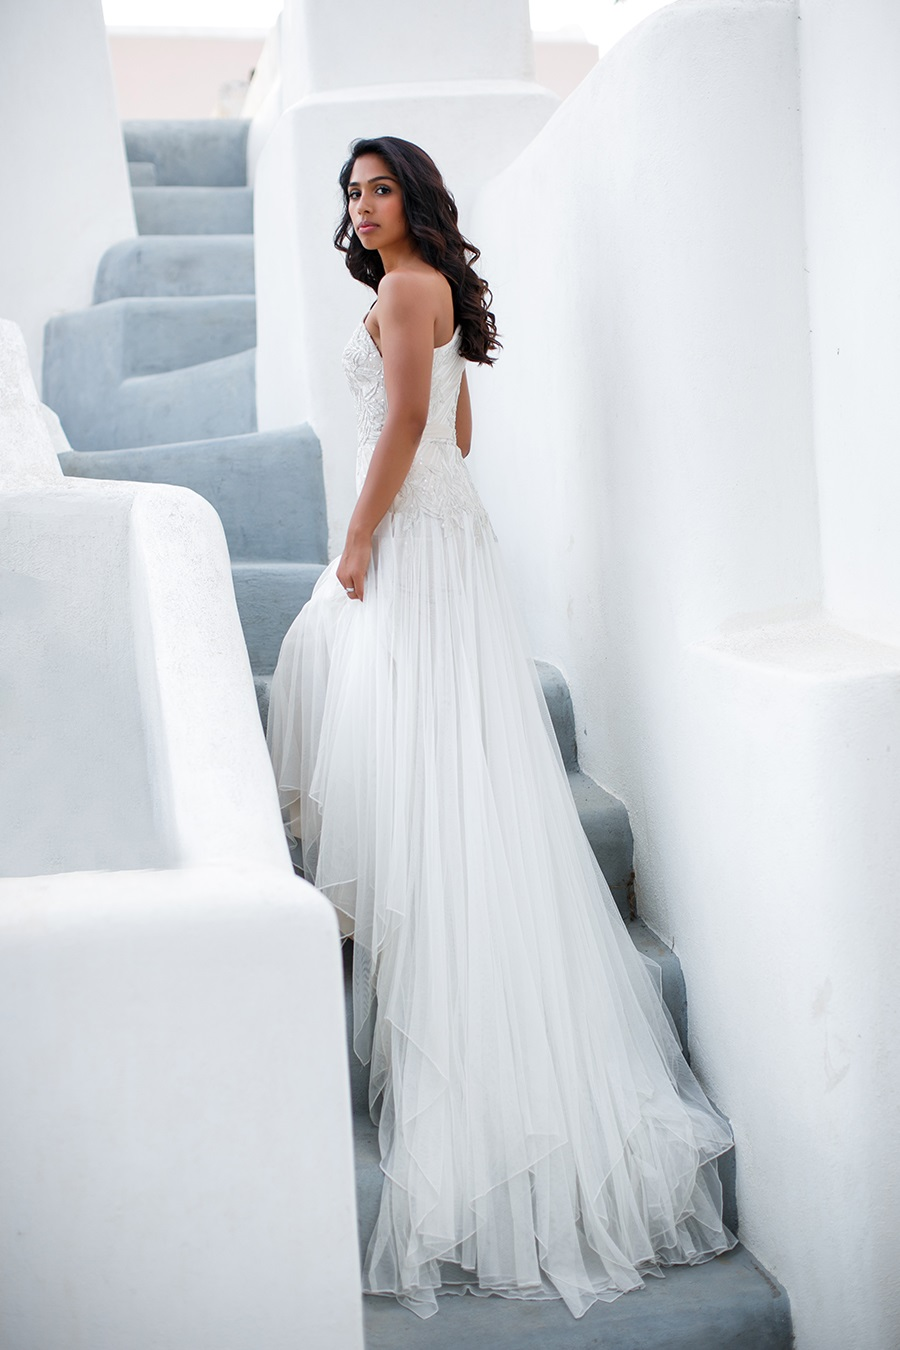 Boho wedding gown- Santorini wedding